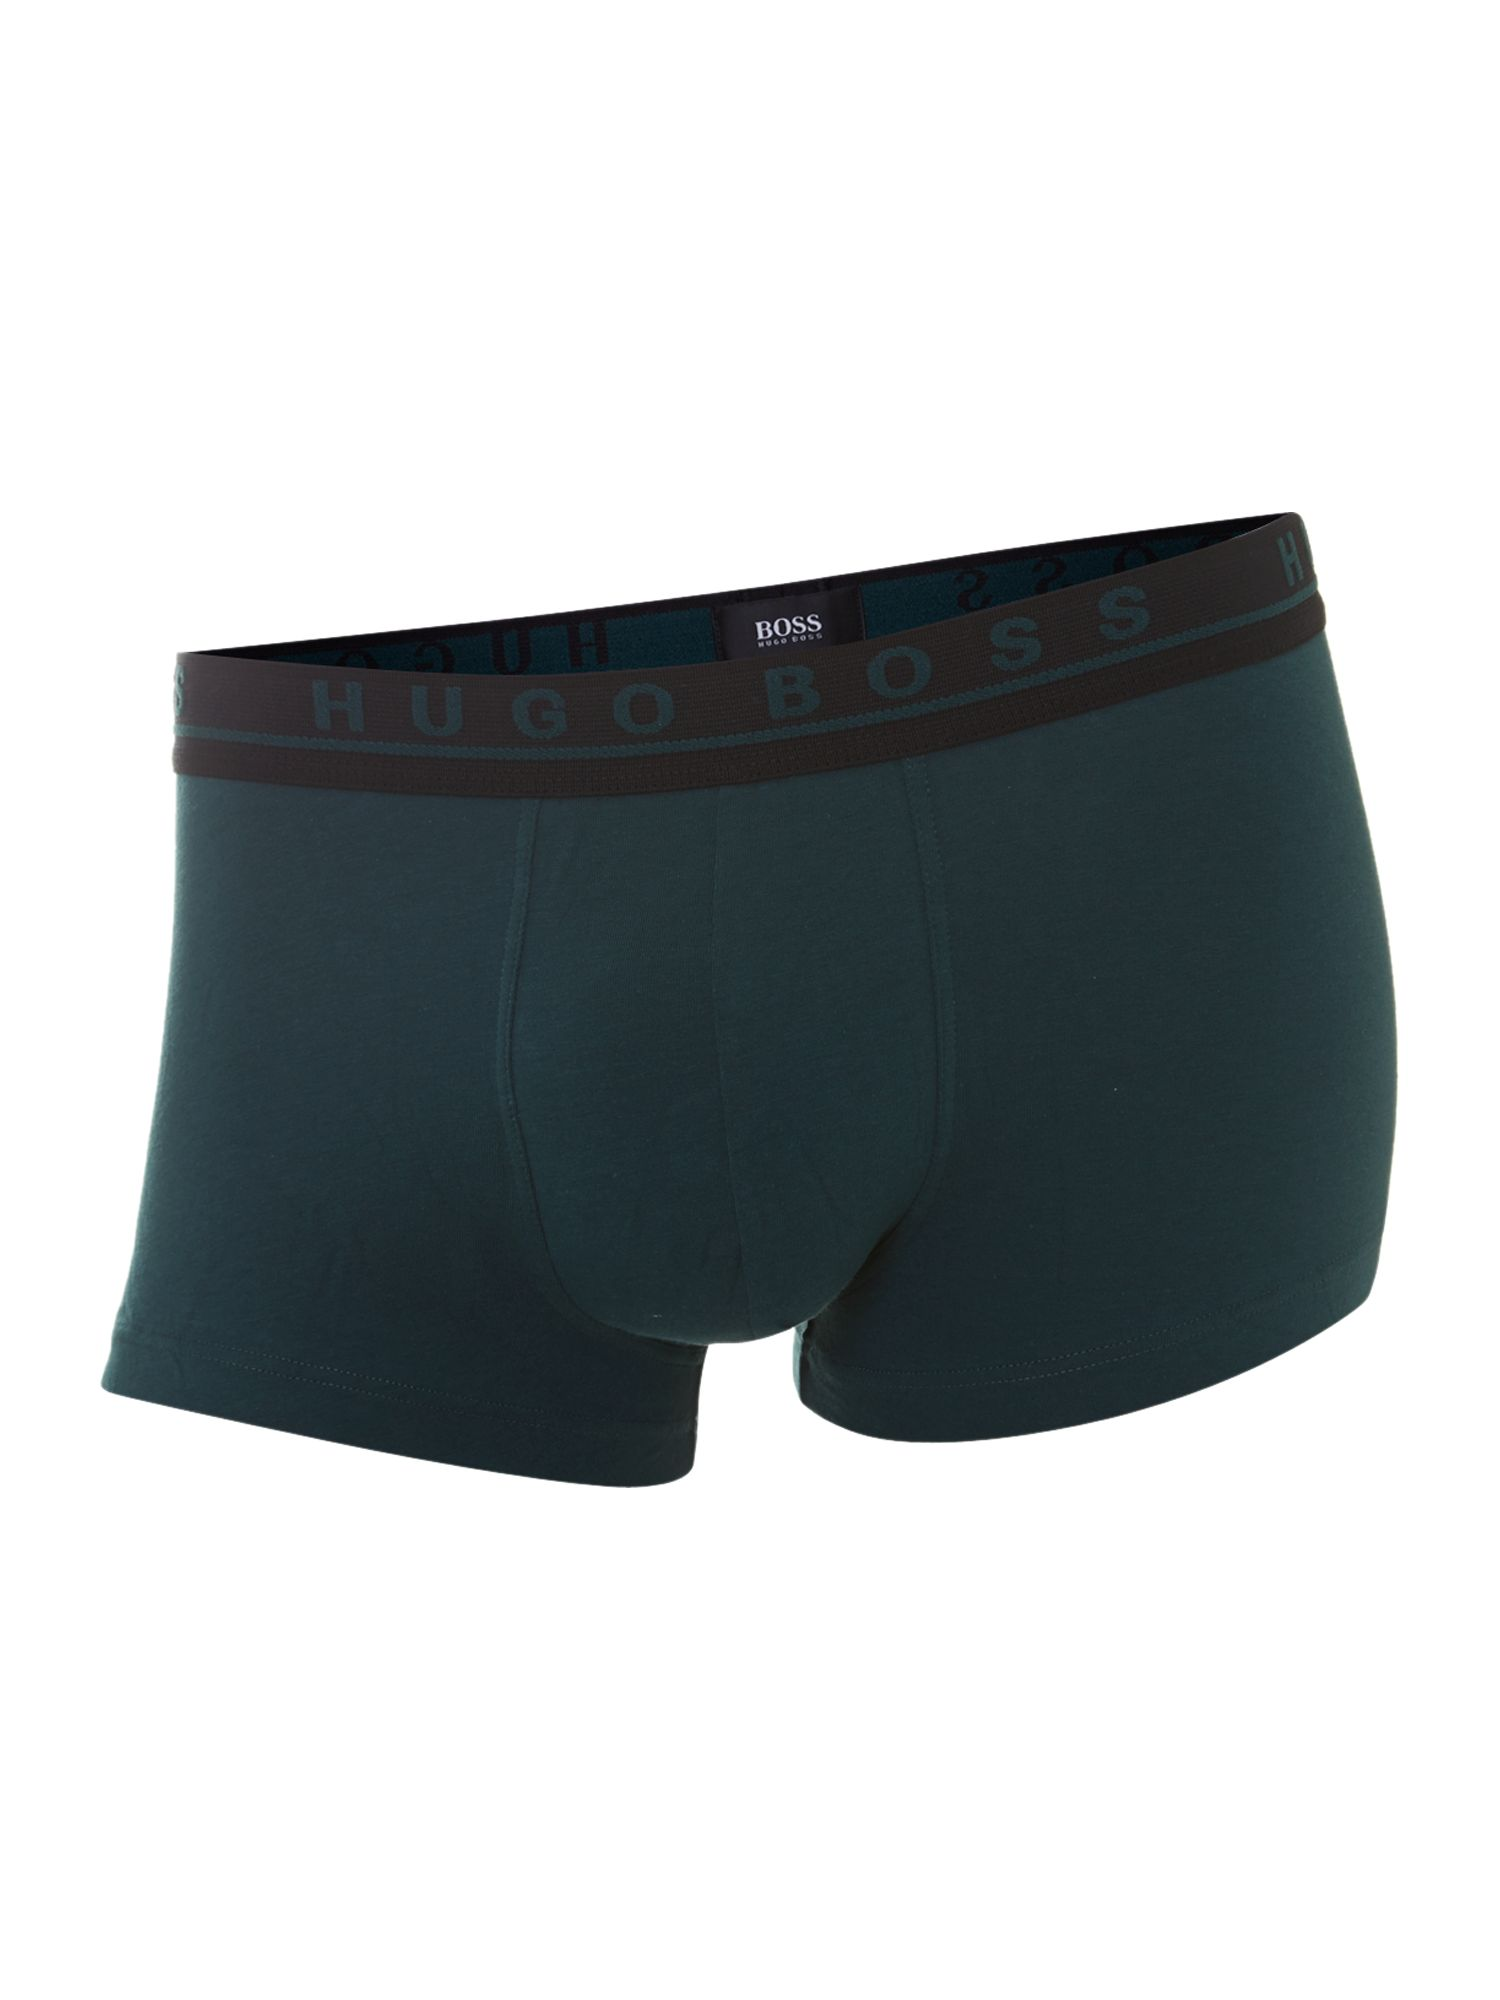 3 pack block colour trunks